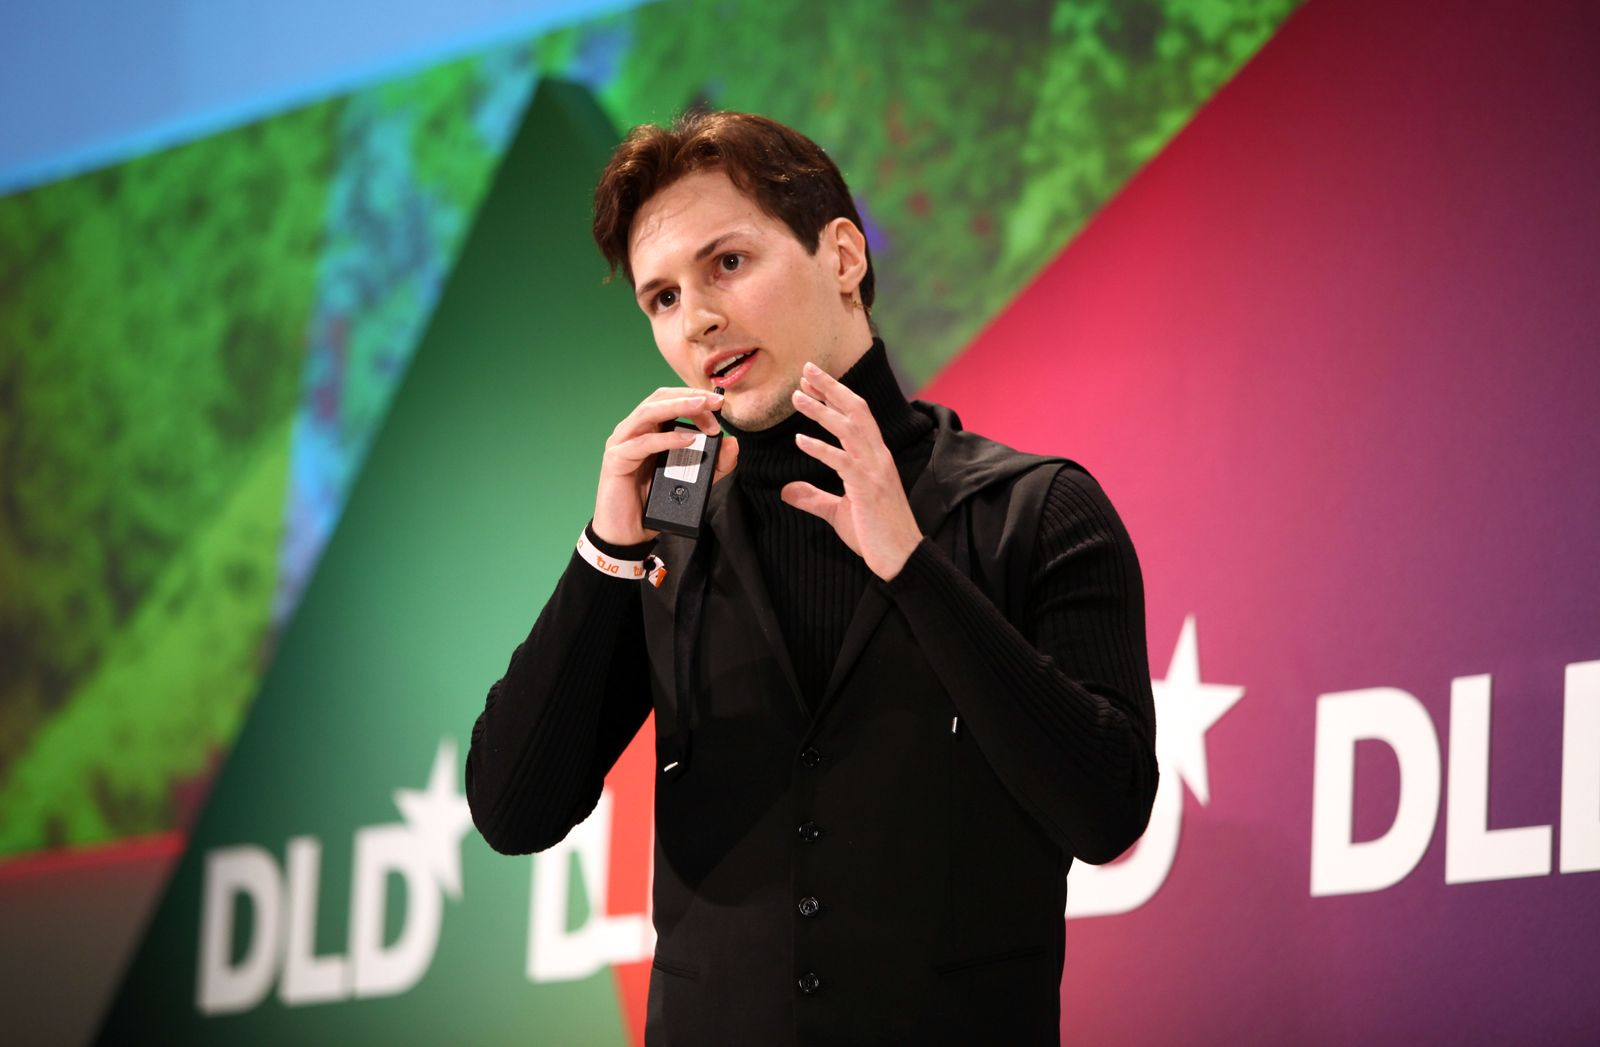 DLD Conference 2012 - Day 3 / Pavel Durow / VKontakte